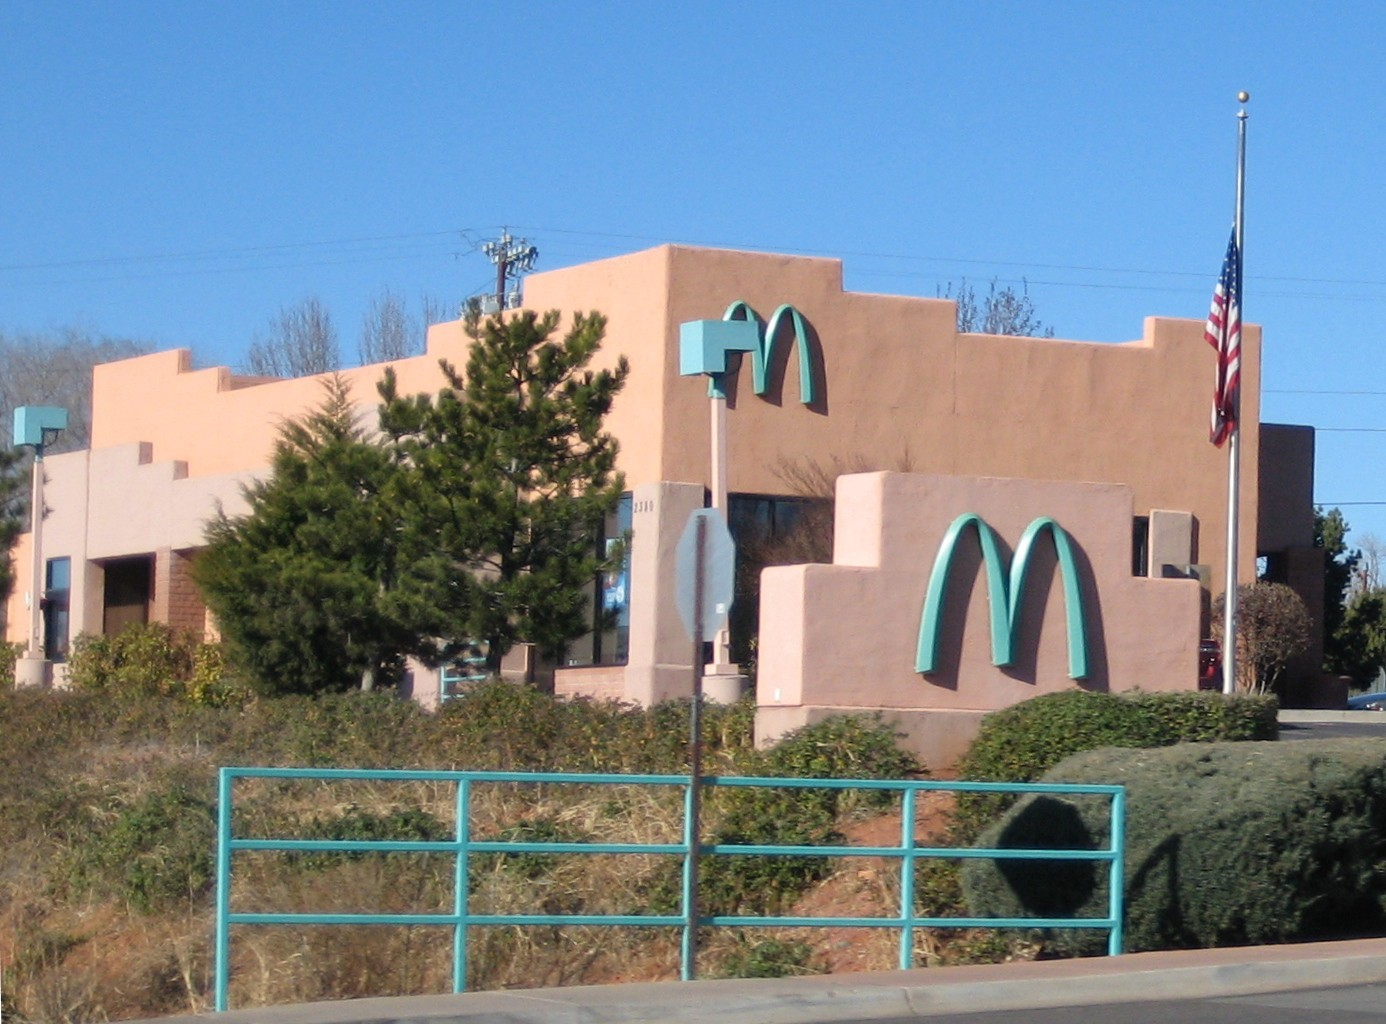 McDonald's with turquoise 'M' arches